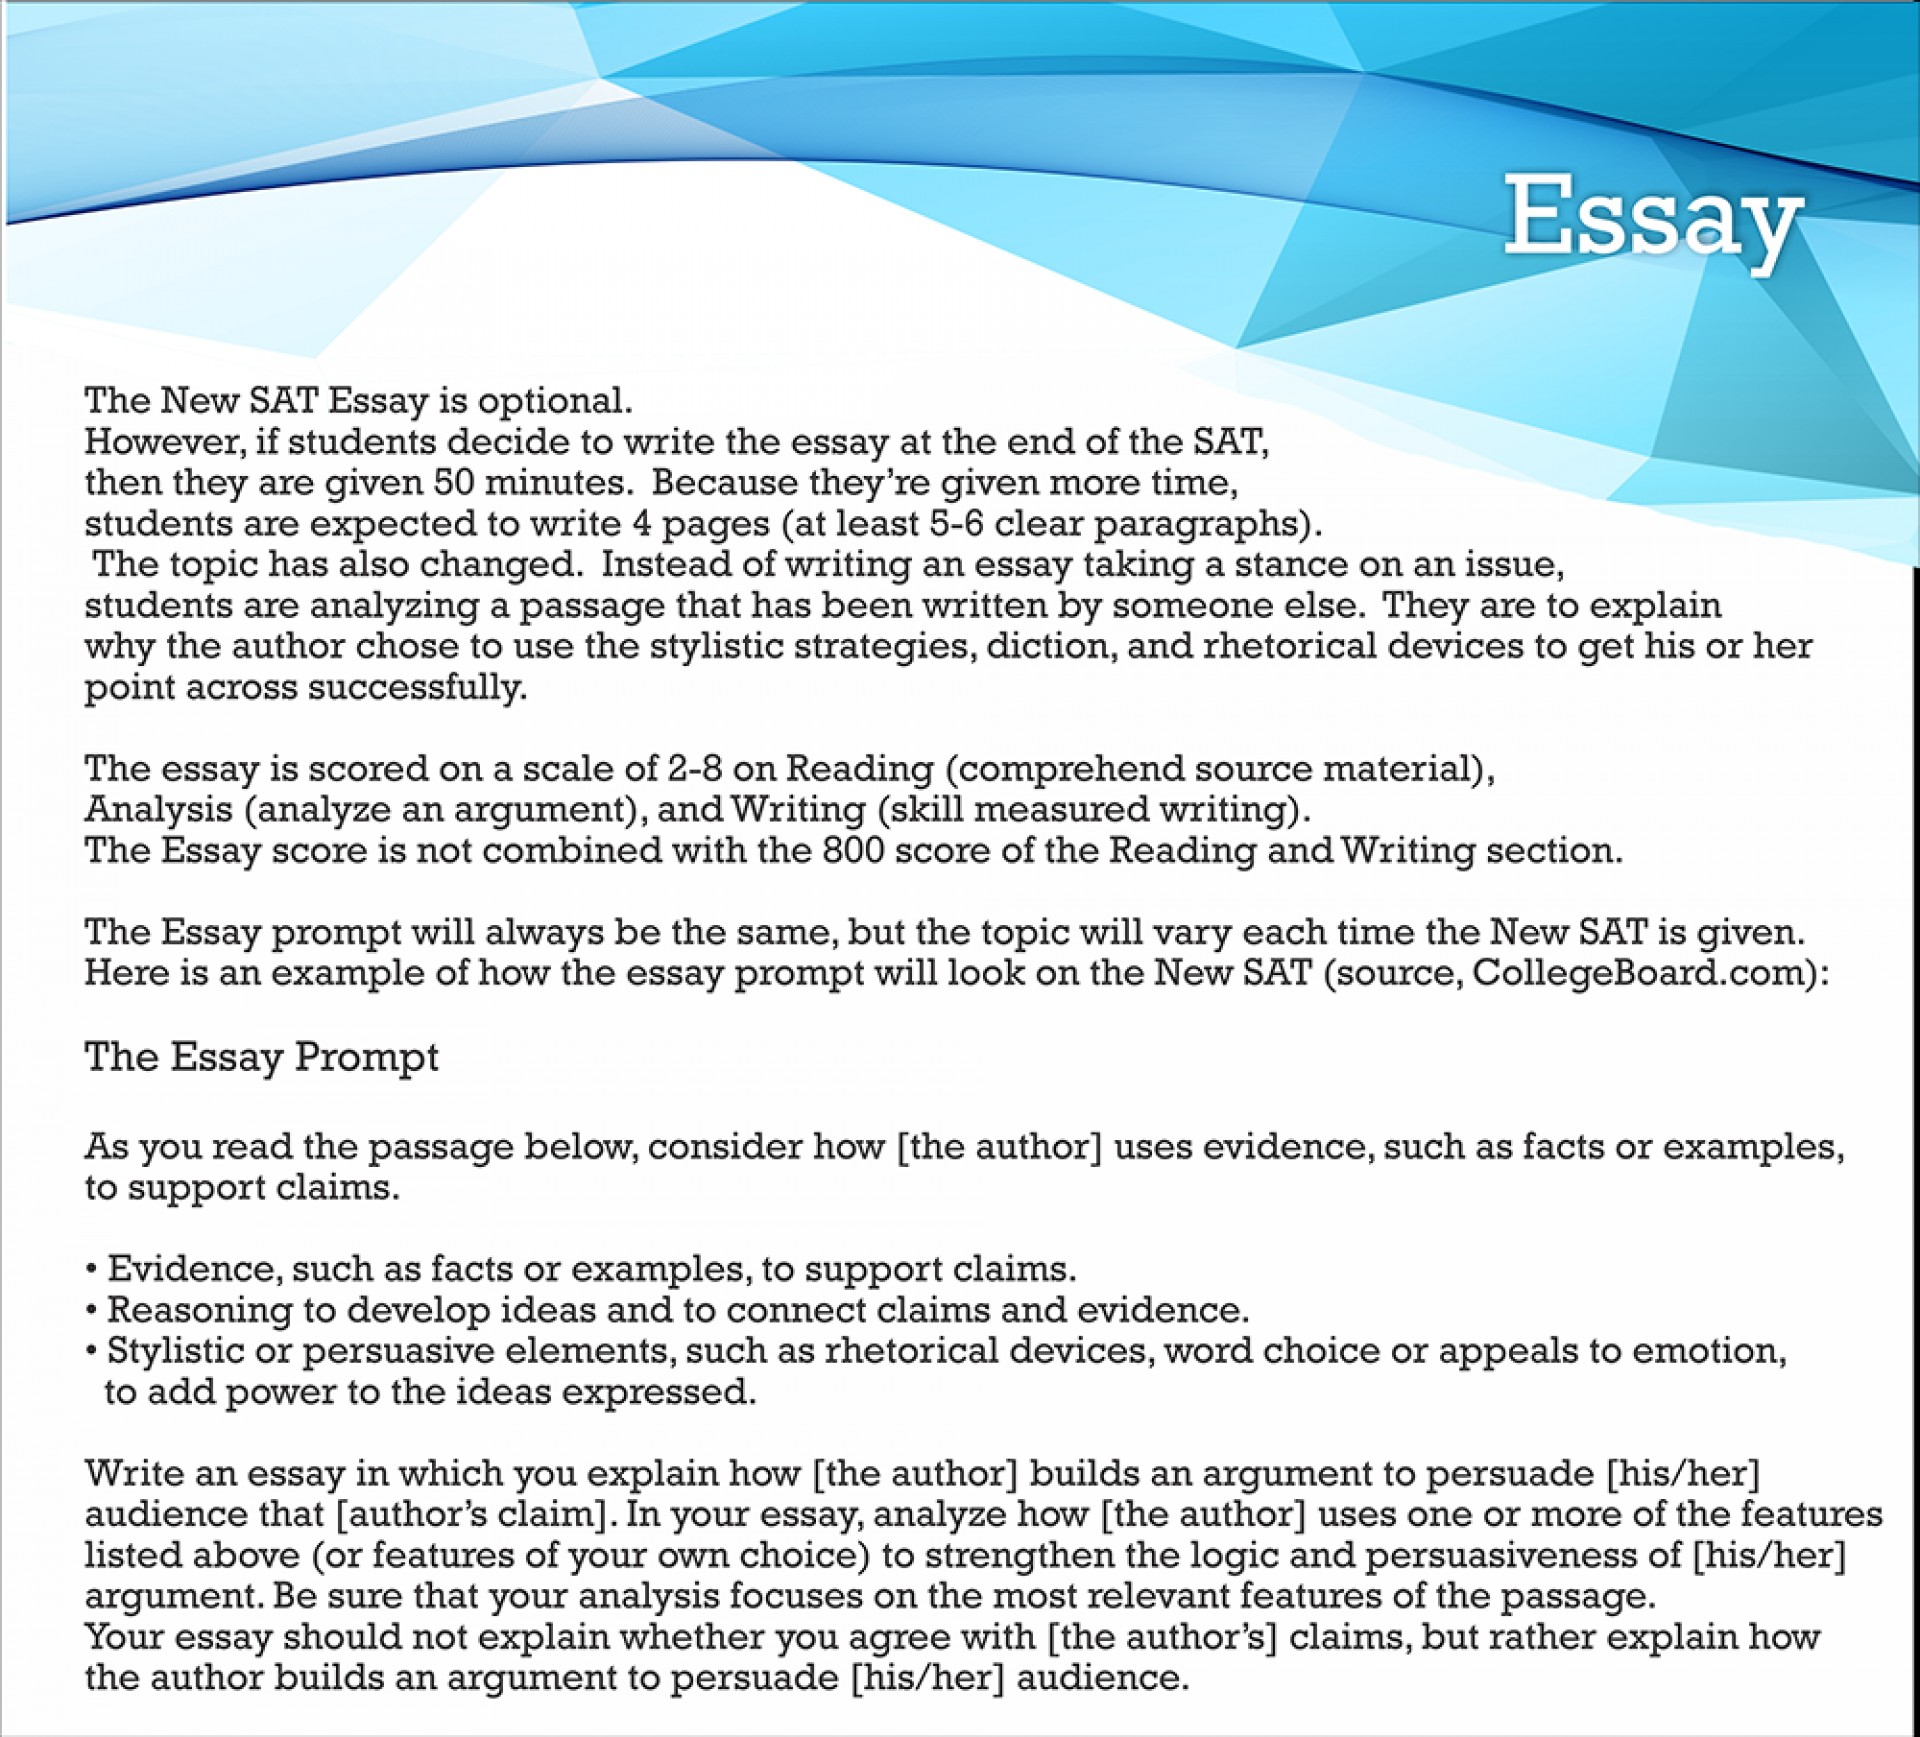 002 Essay Example Tips On Sat Essay1 Exceptional Practice Test 8 4 1920